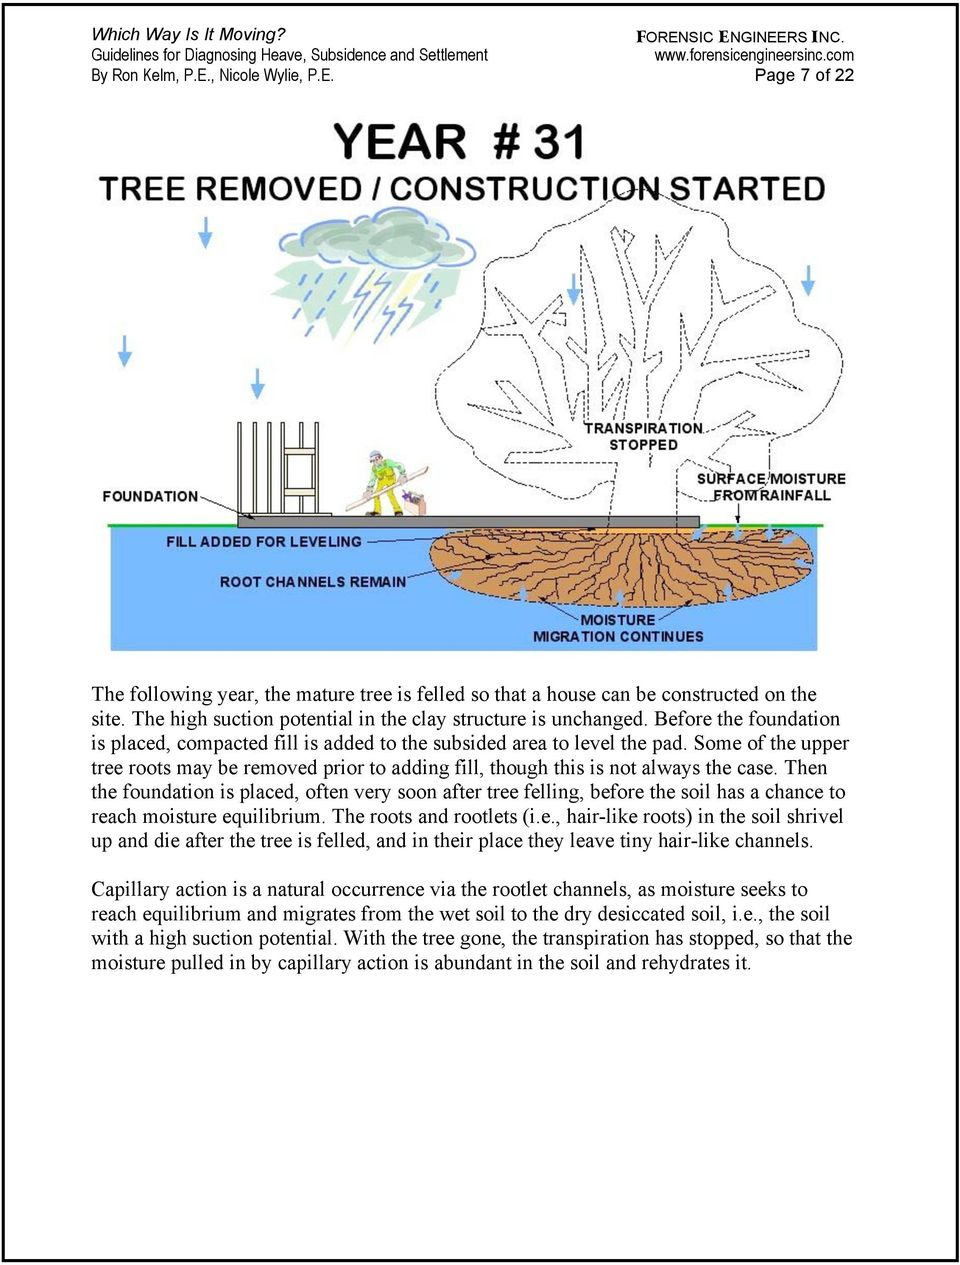 Some of the upper tree roots may be removed prior to adding fill, though this is not always the case.